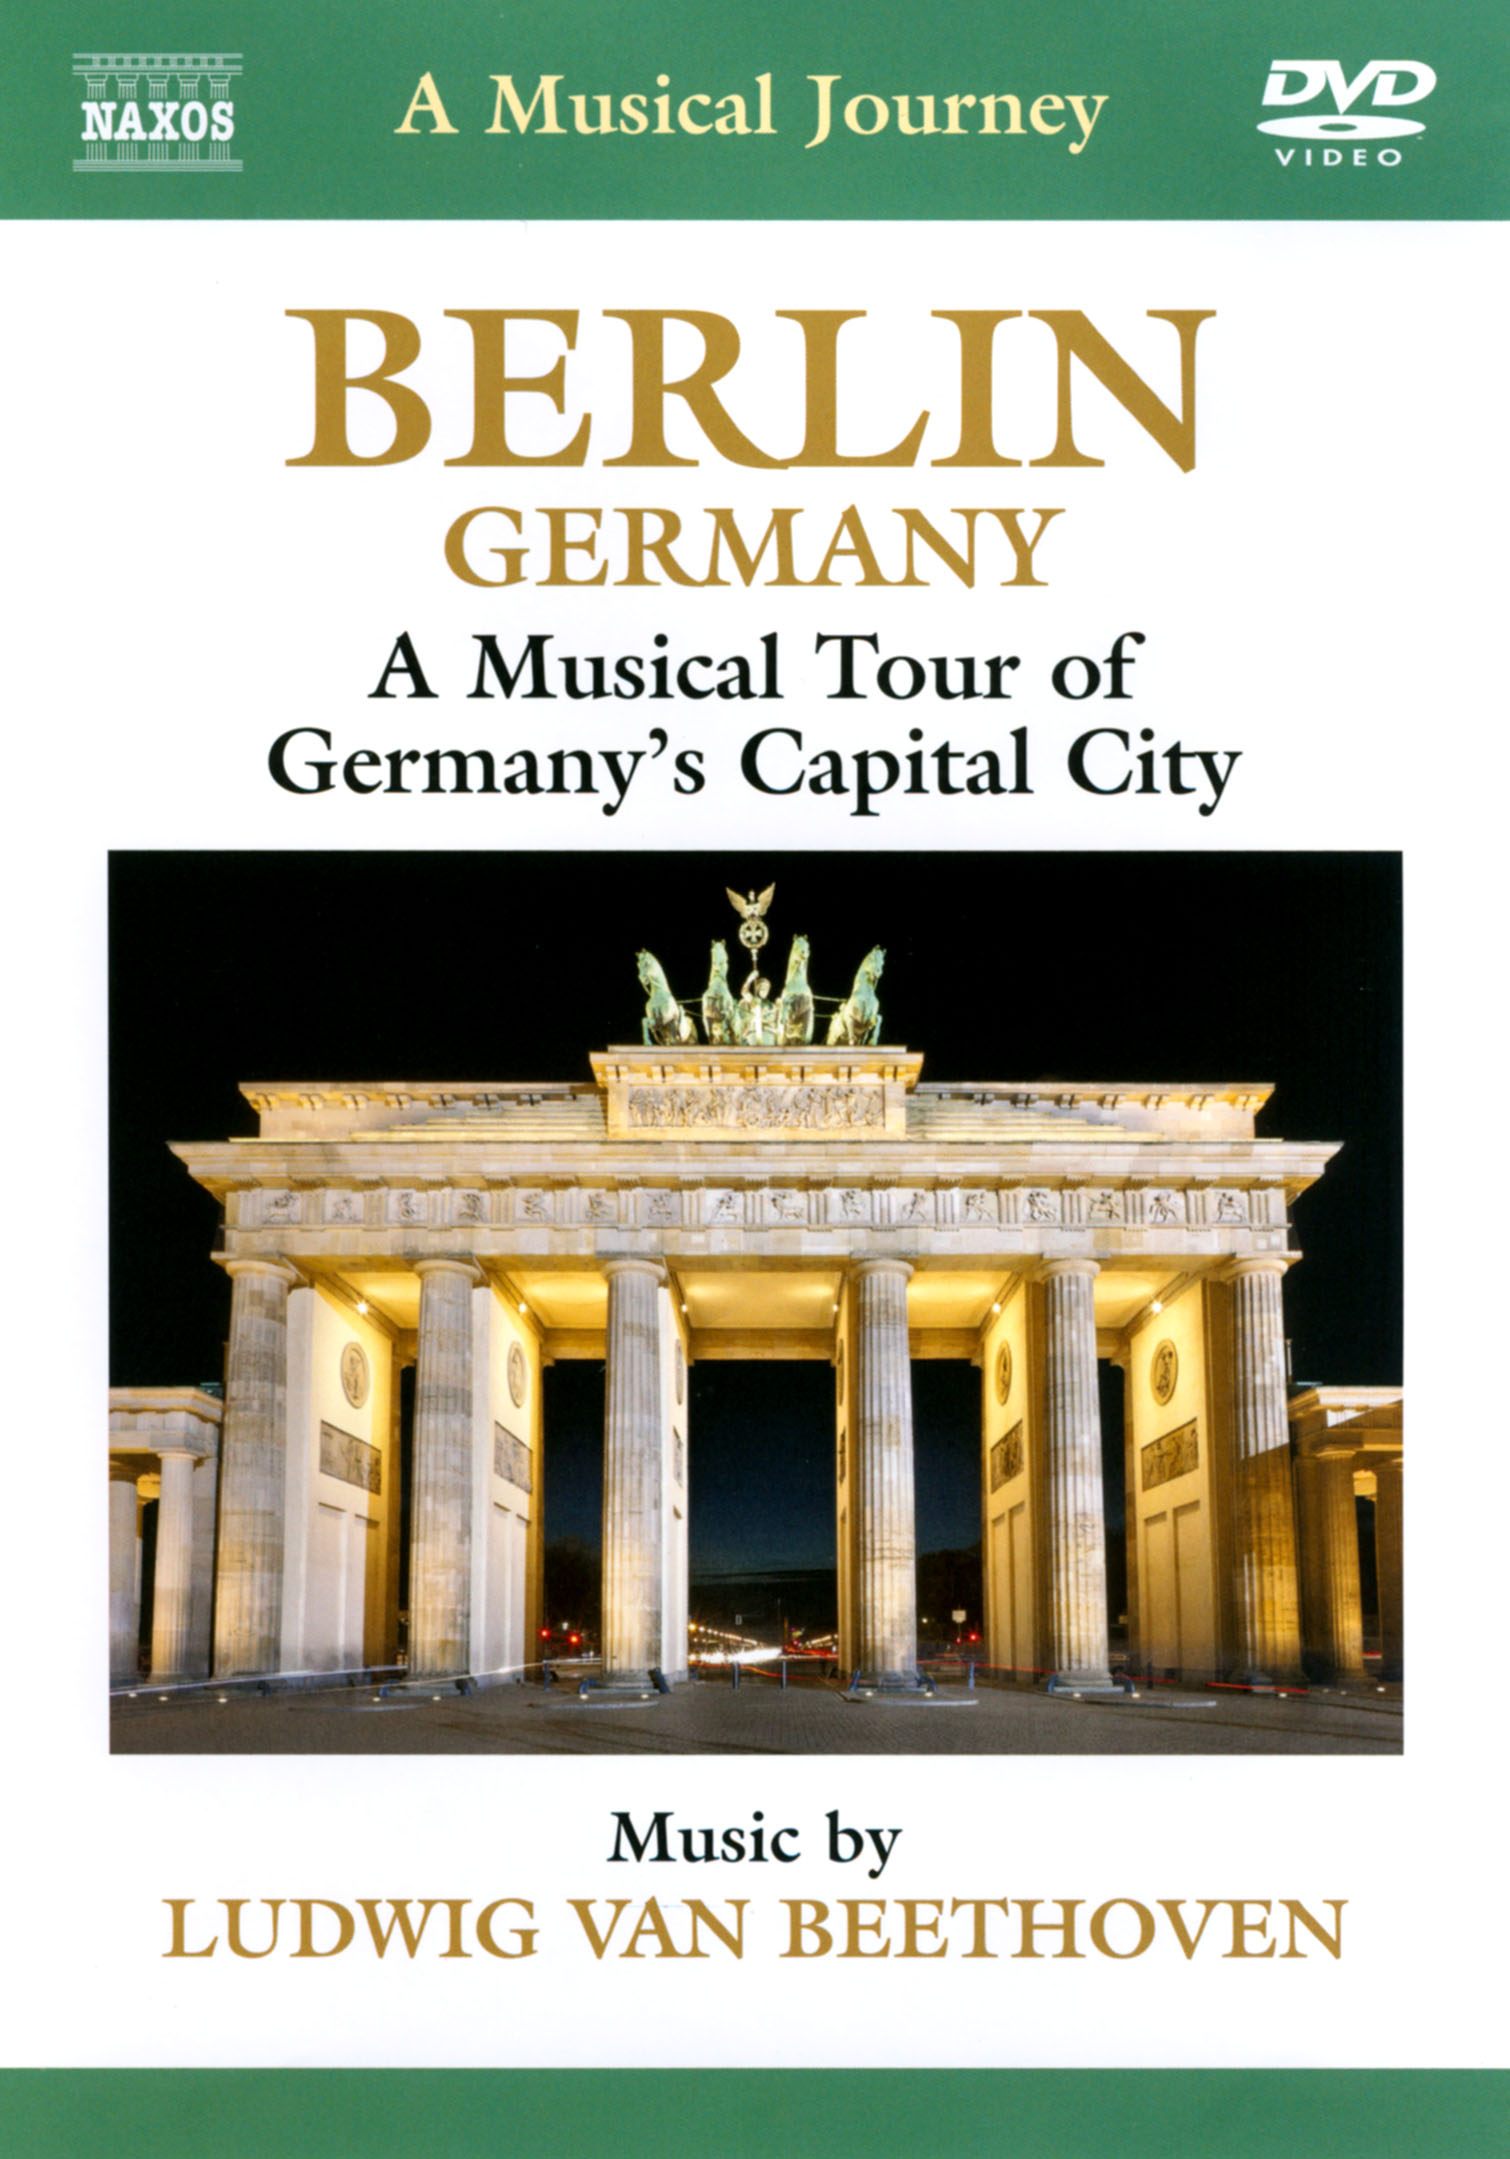 A Musical Journey: Berlin, Germany - A Musical Tour of Germany's Capital City